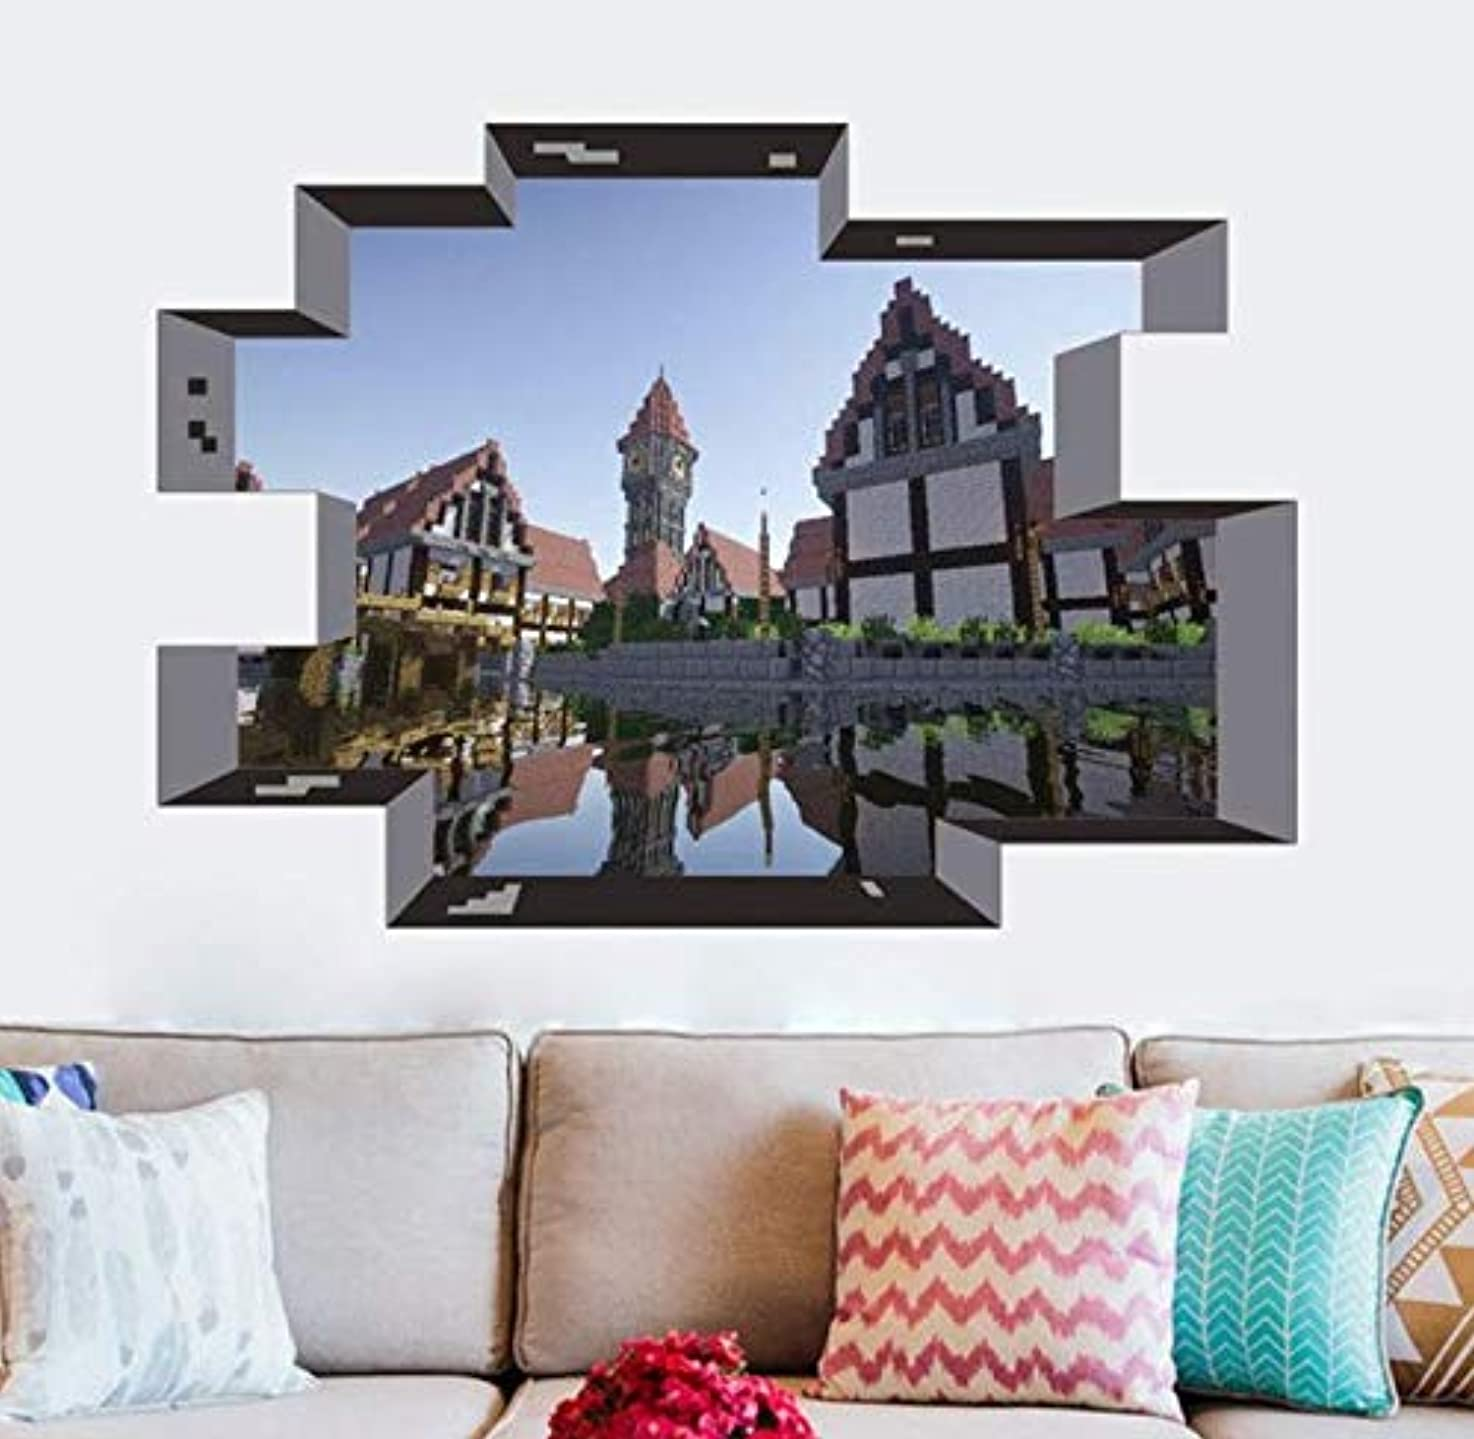 Mosaic Game Theme Wall Stickers for Kids Room Home Decoration 3D Window PVC Steve Mural Art DIY Boys Wall Decal Poster (14)